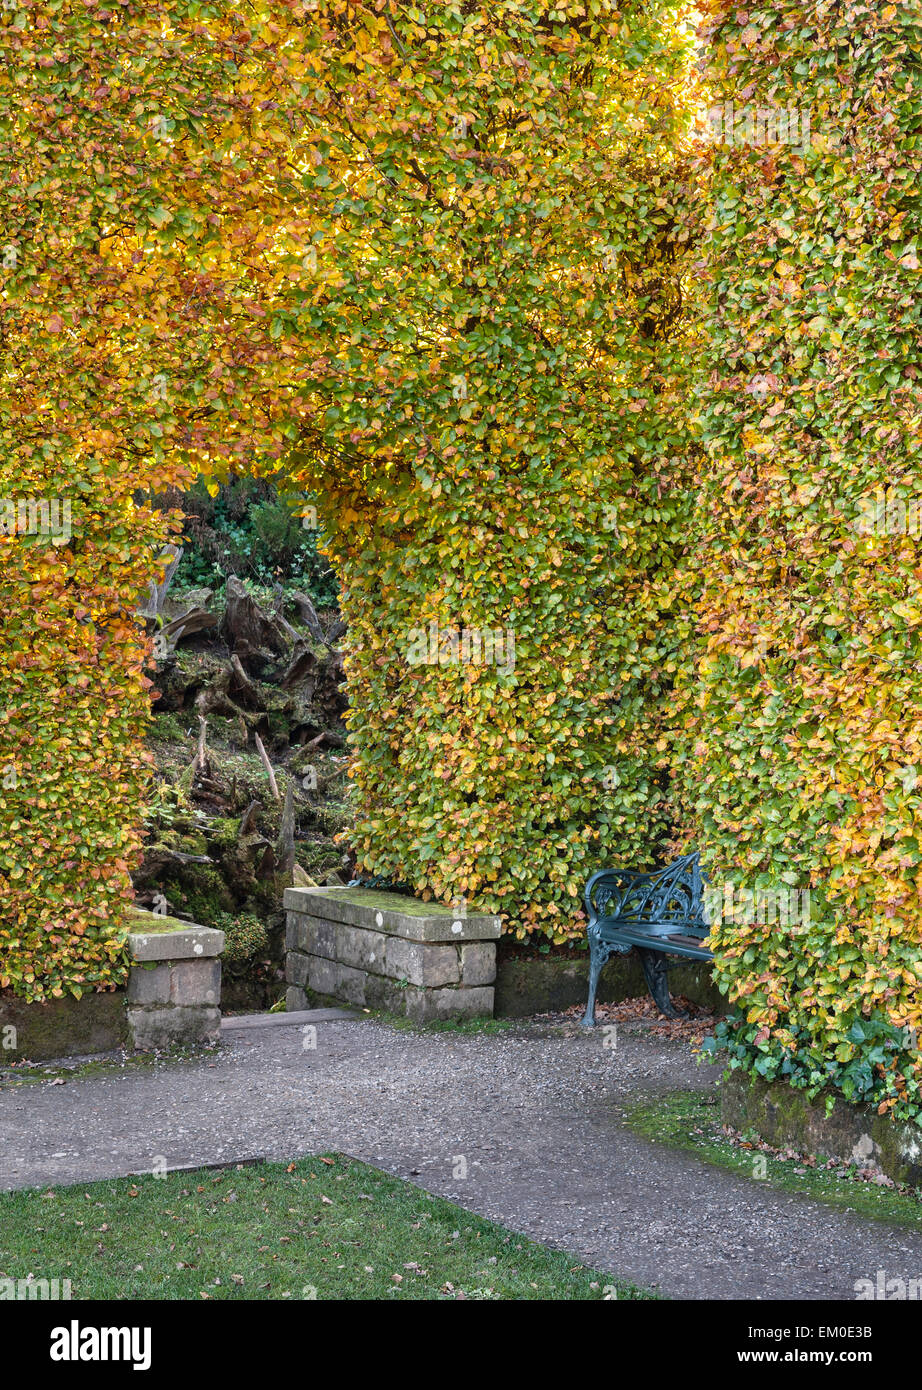 Biddulph Grange Garden, Staffordshire, UK. The entrance to the Stumpery, where paths are lined with huge decaying - Stock Image